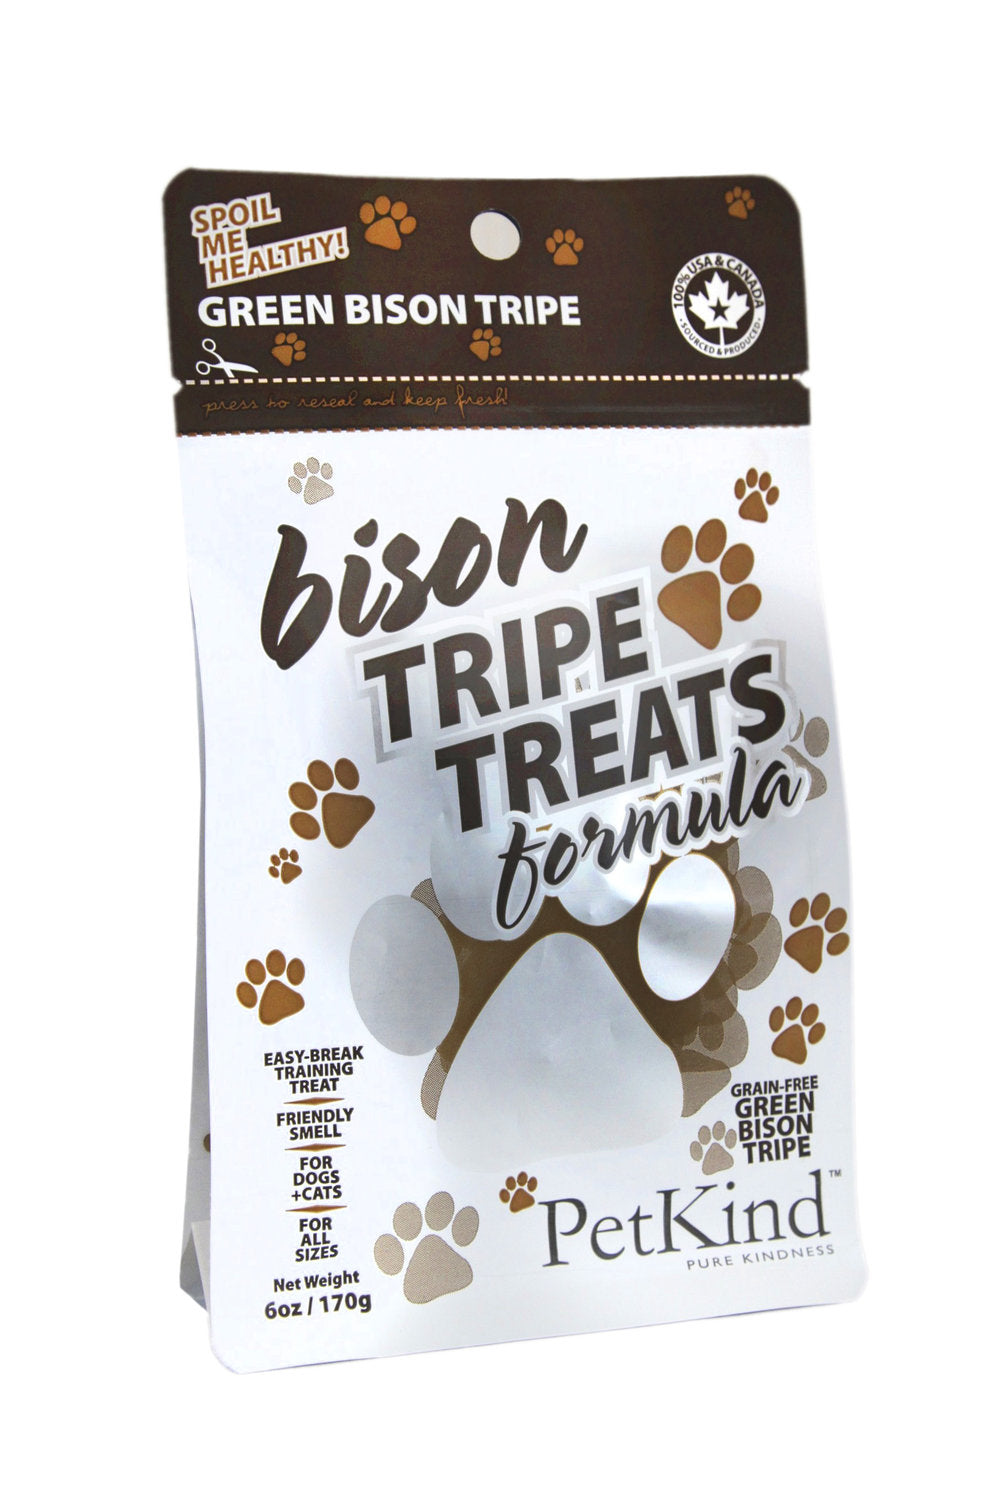 Petkind Green Bison TripeTreat Formula